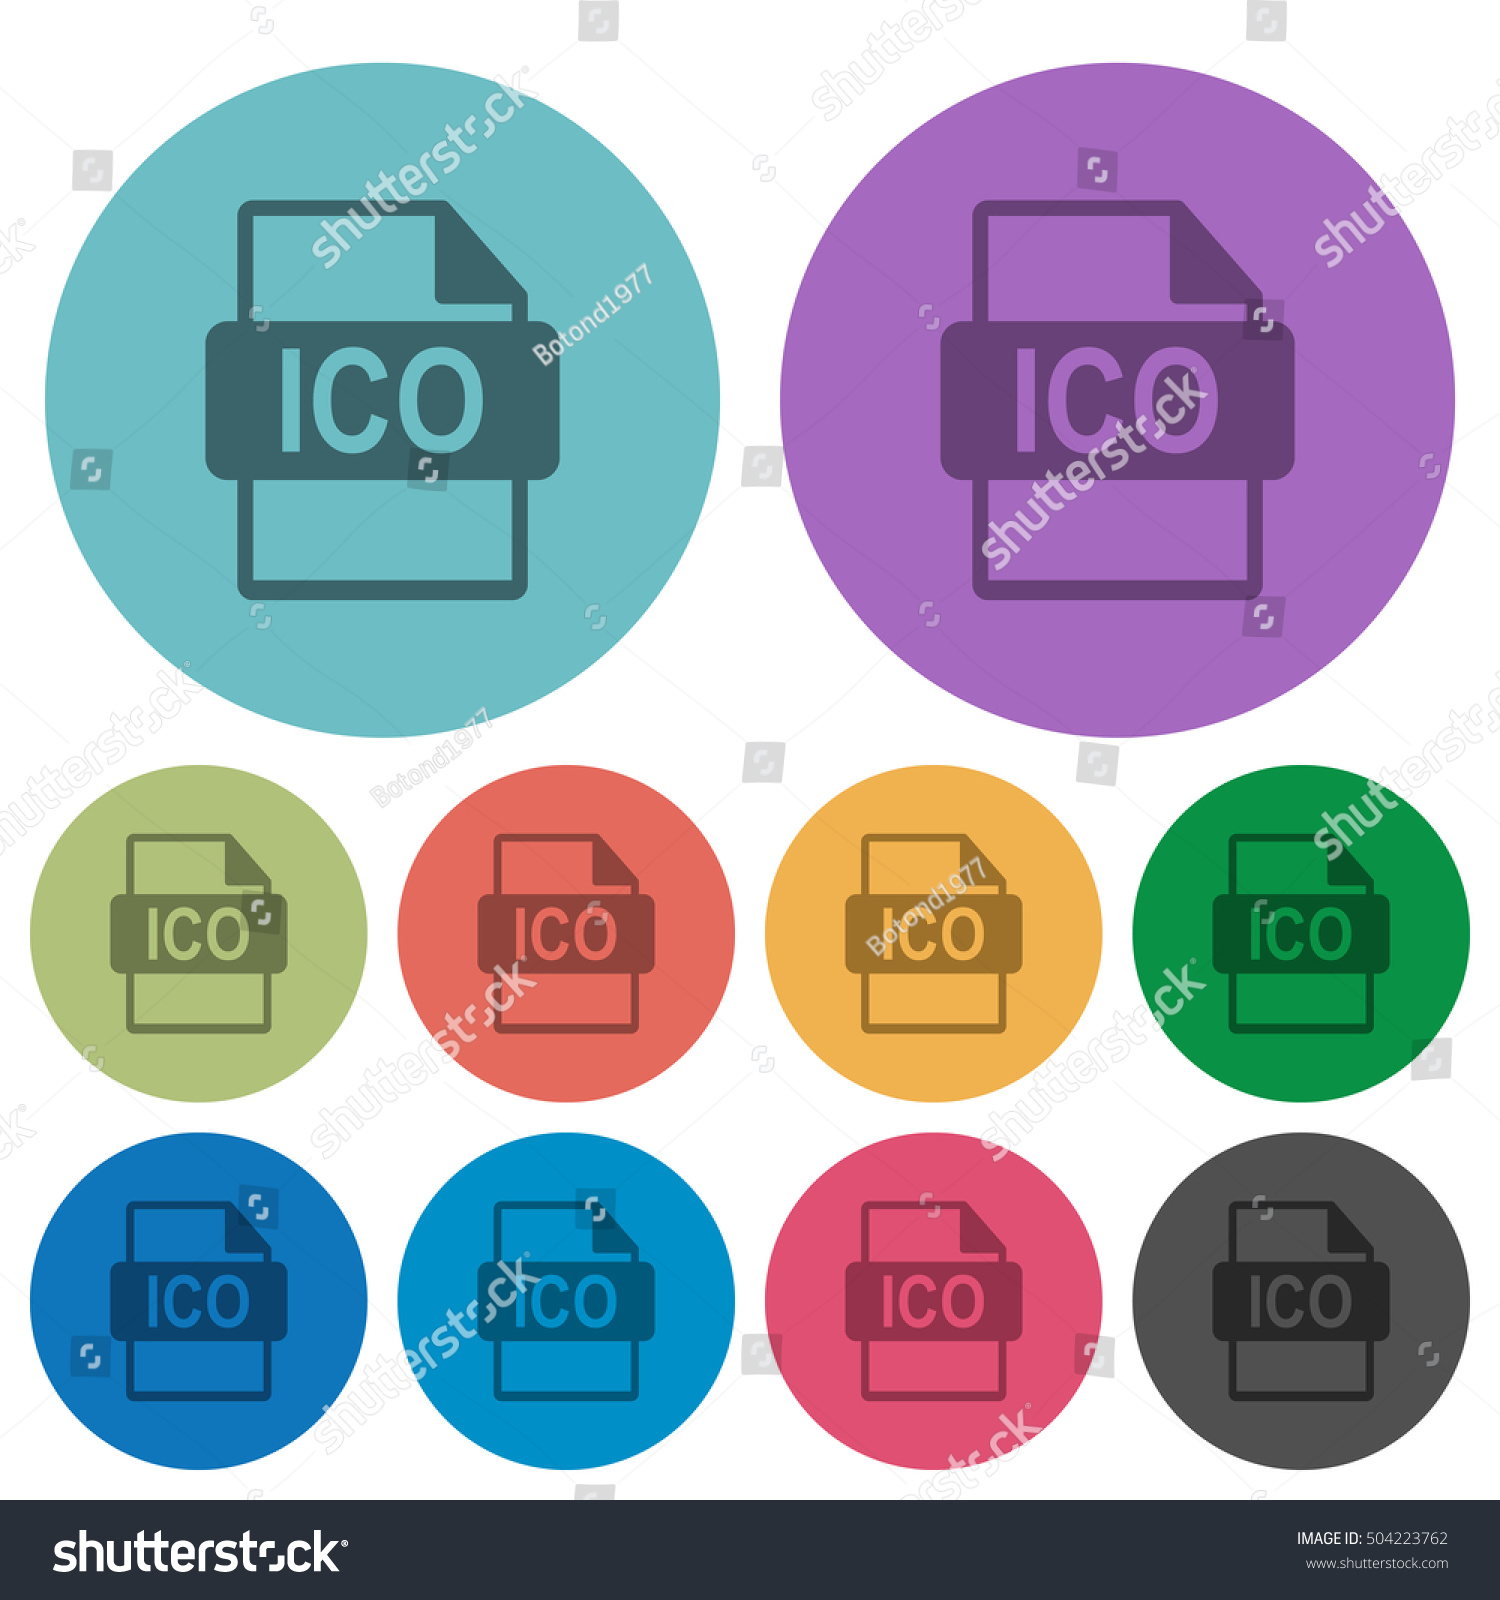 ico file format flat icons on stock vector 504223762 shutterstock. Black Bedroom Furniture Sets. Home Design Ideas